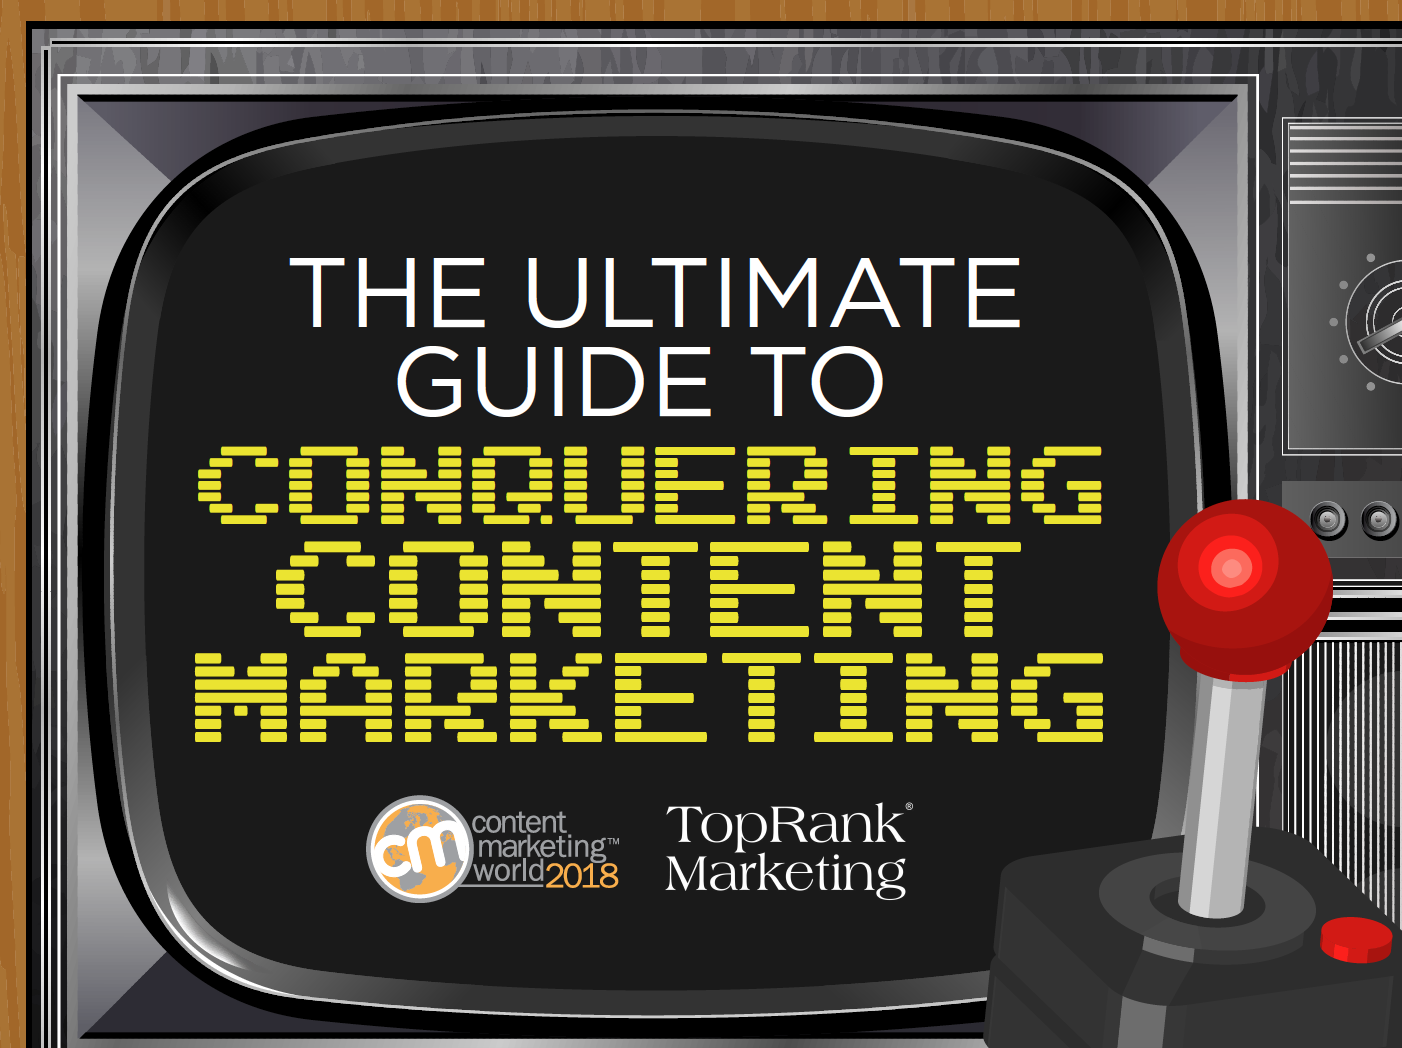 The Ultimate Guide to Conquering Content Marketing - #CMWorld 2018